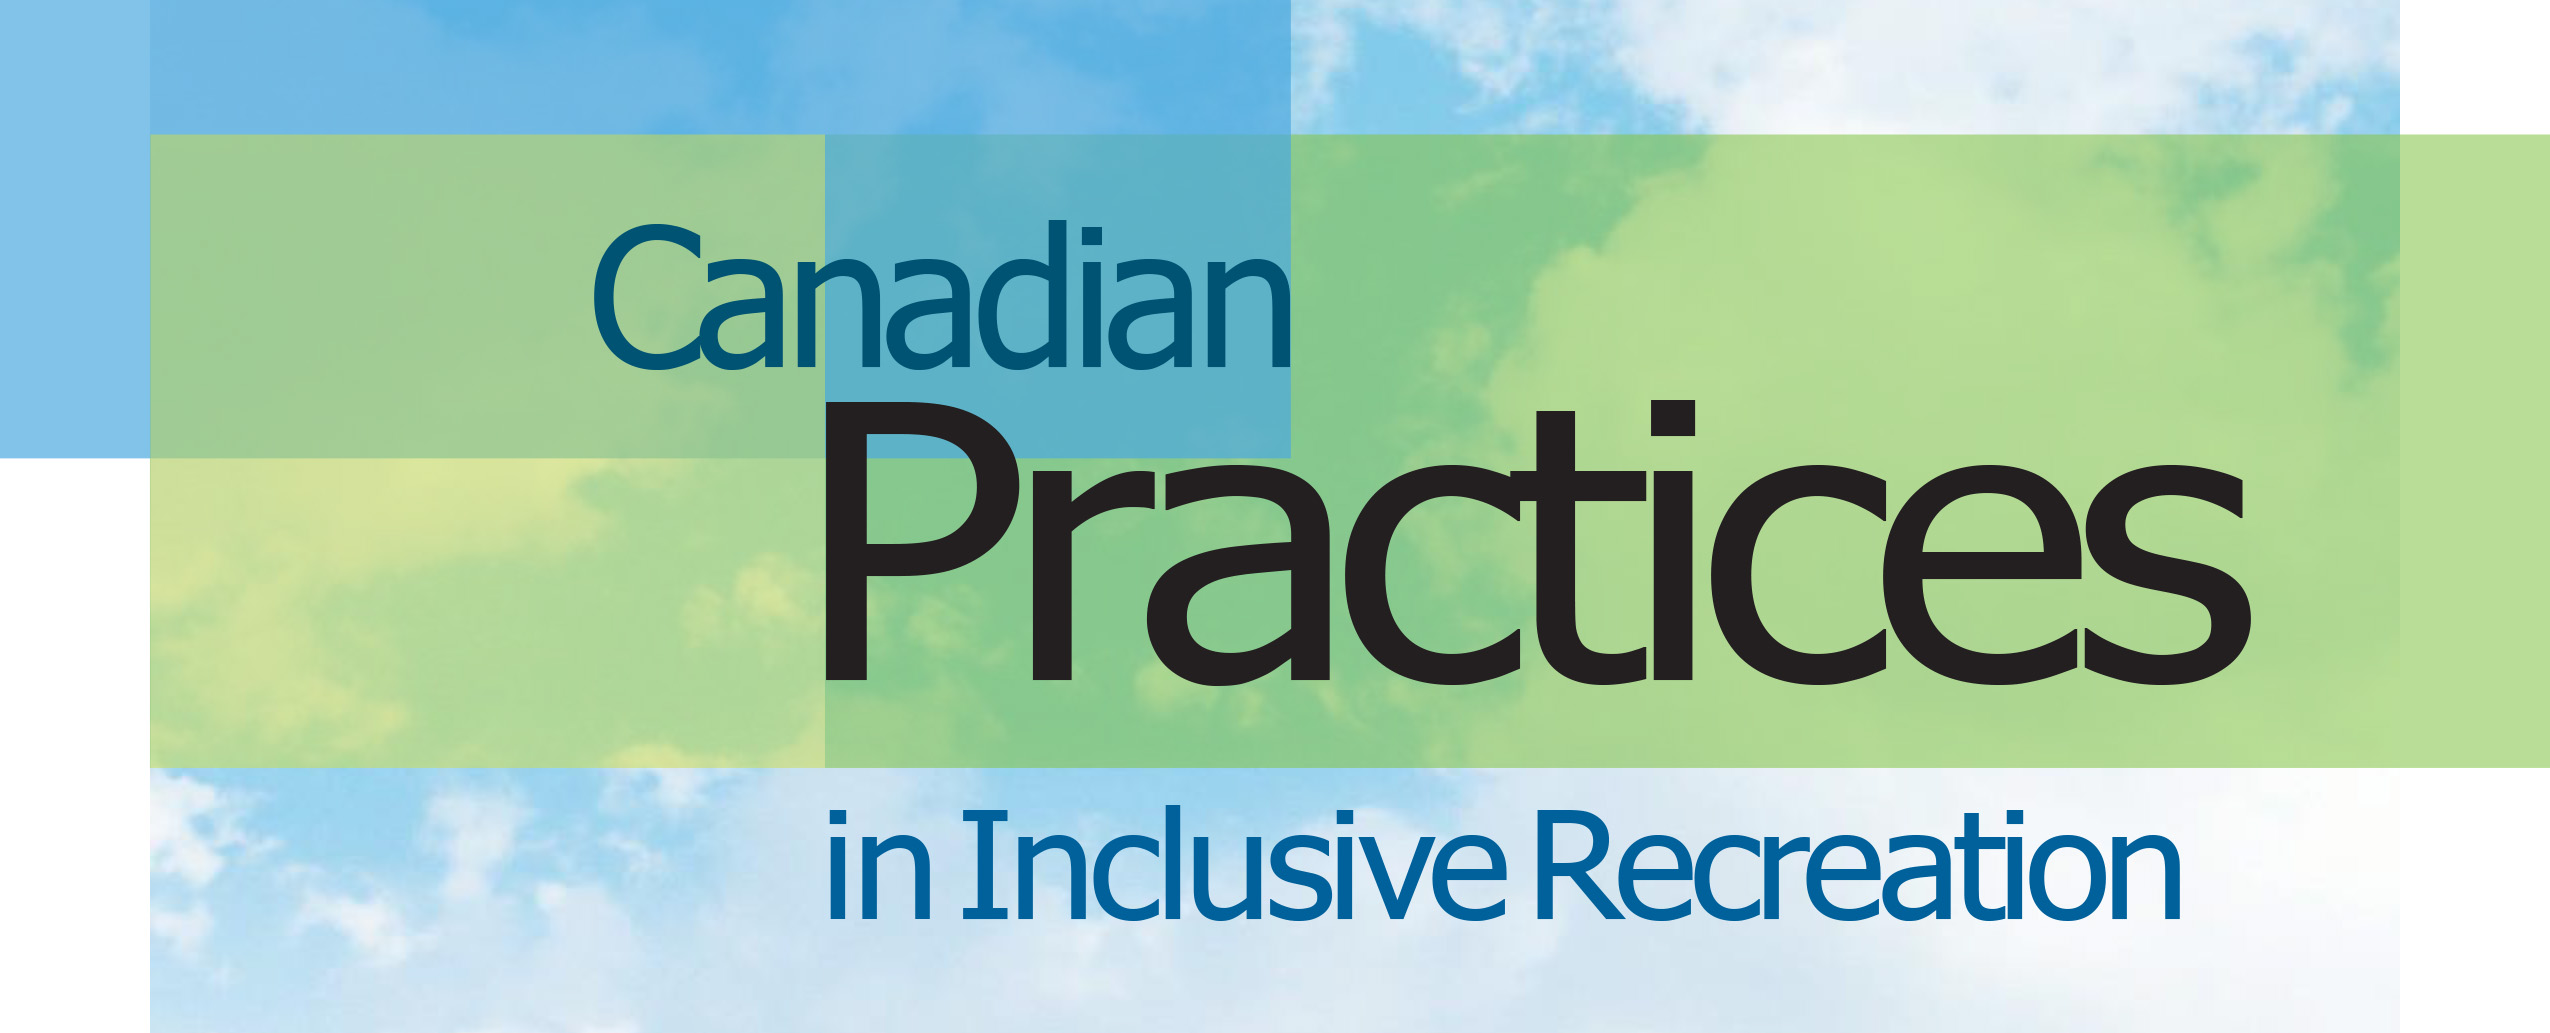 Sky and clouds behind the words Canadian Practices in Inclusive Recreation